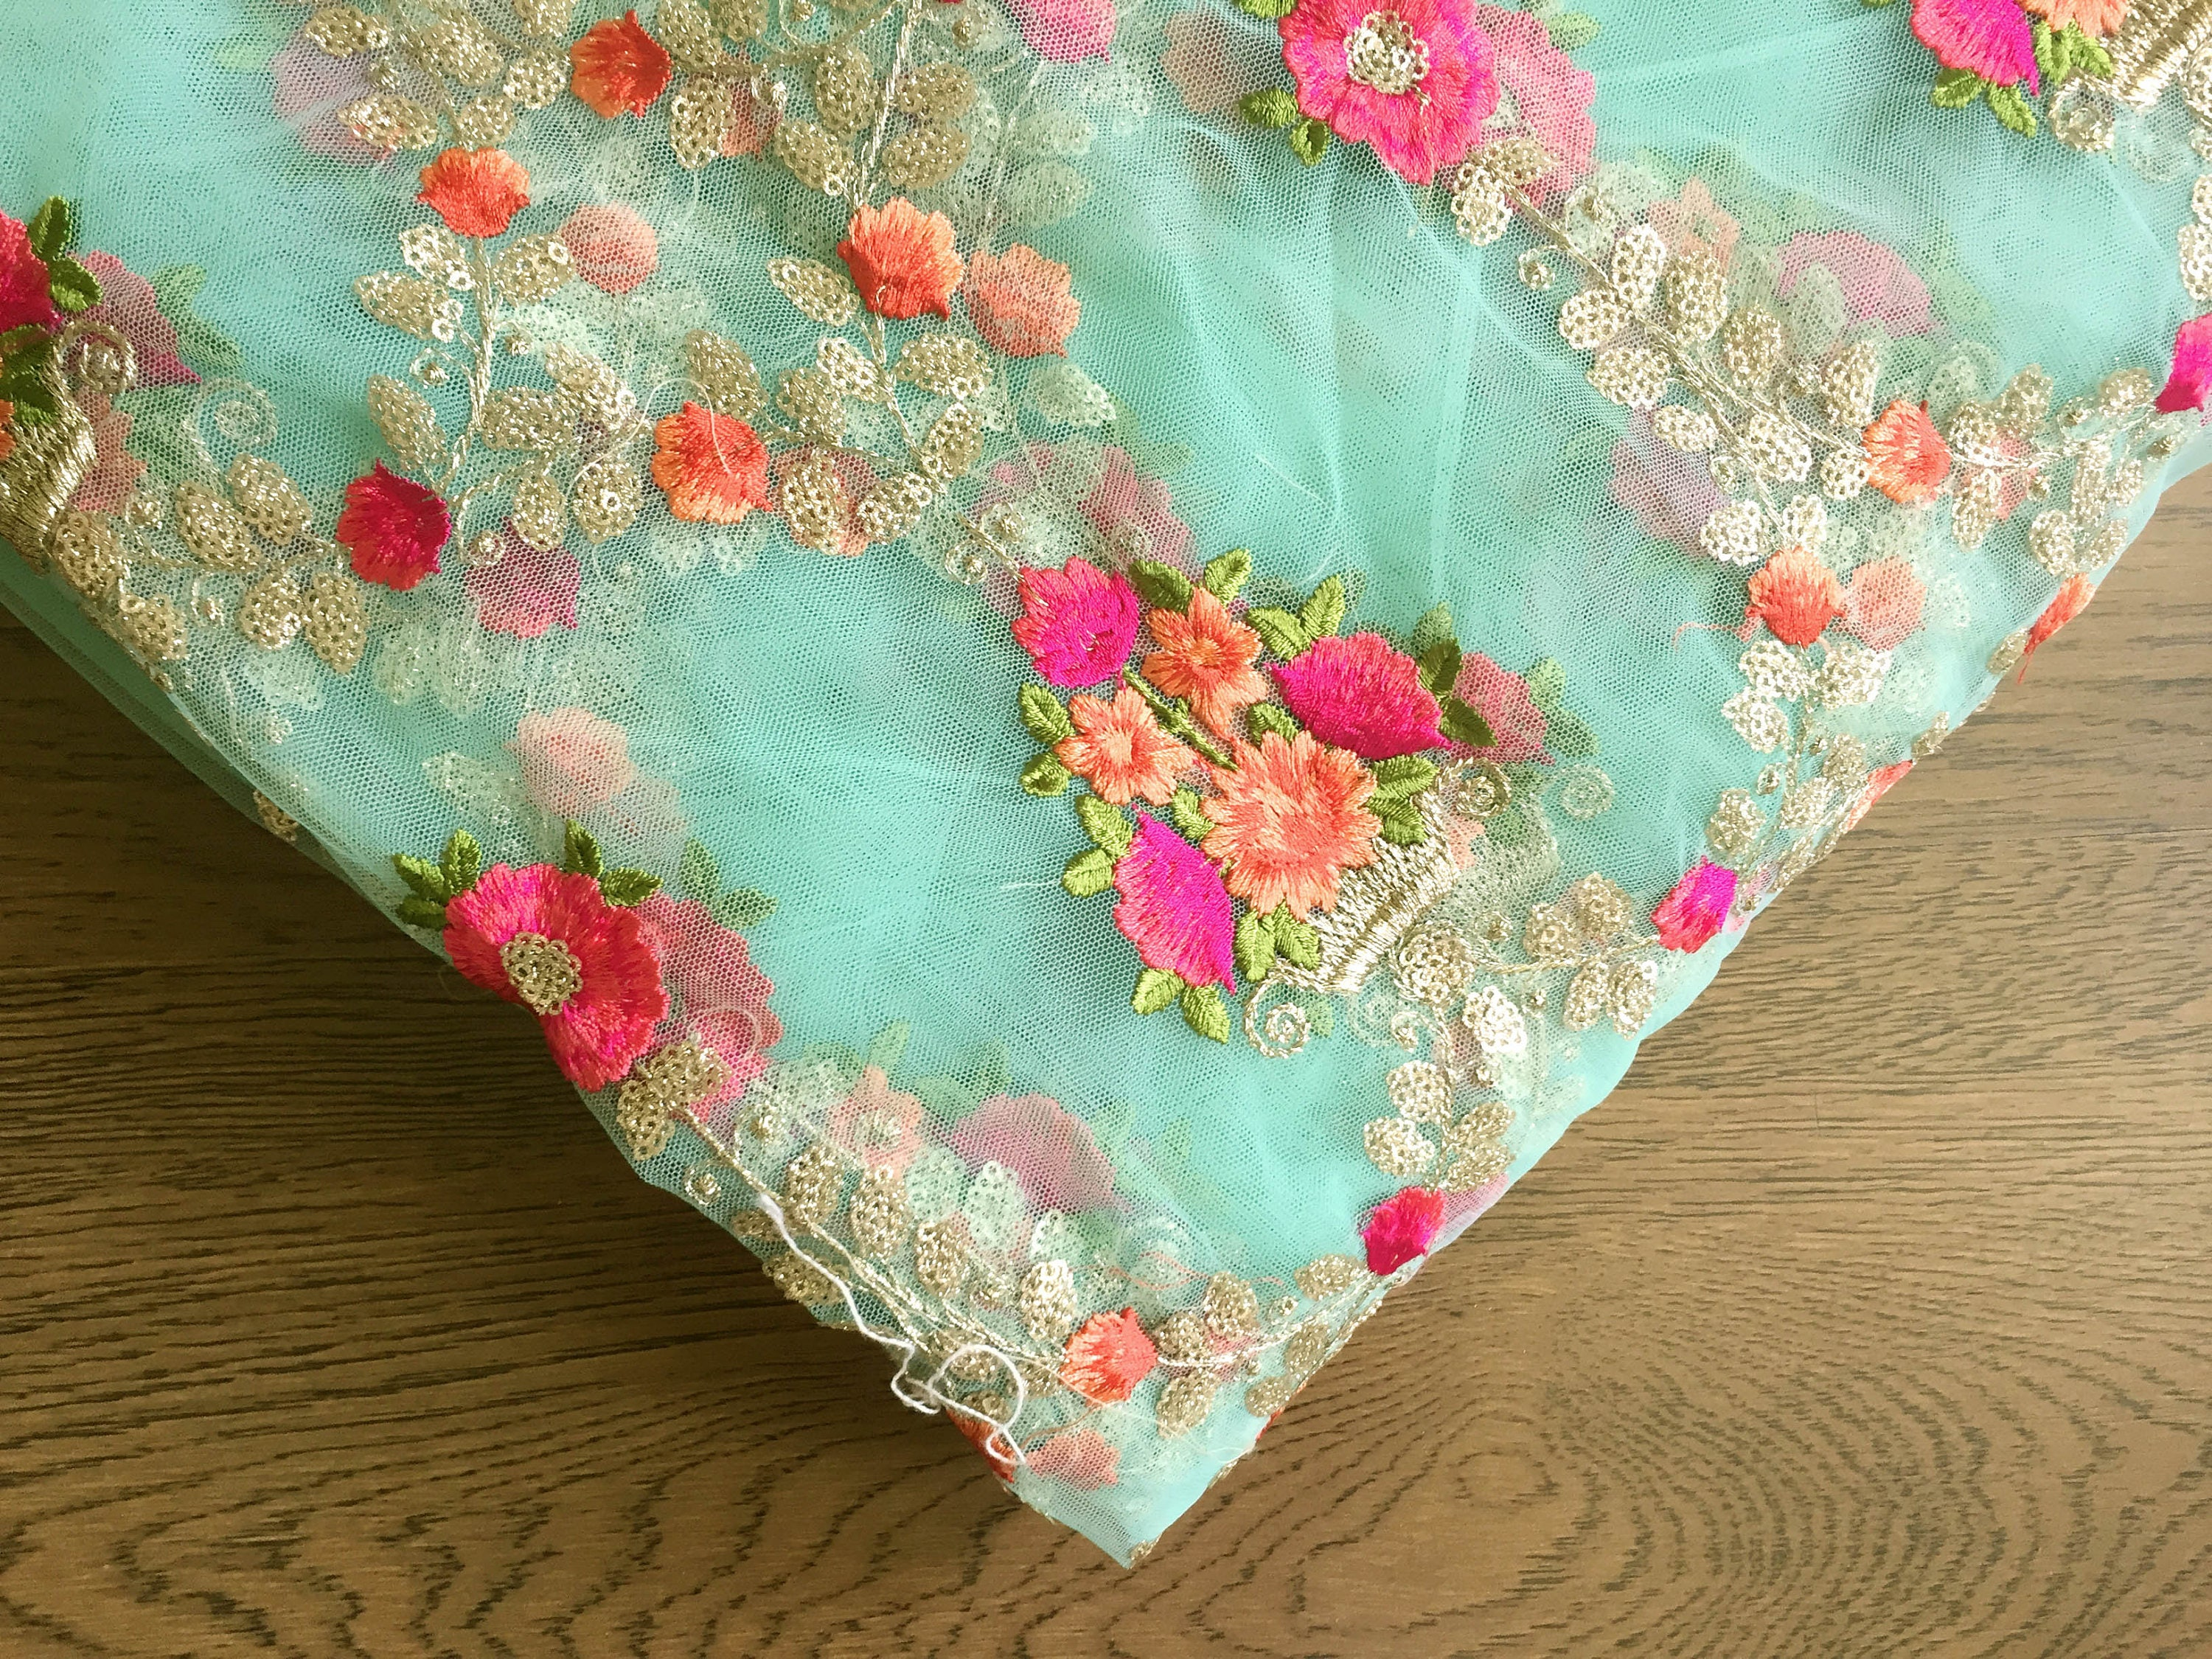 Aqua embroidered mesh floral embroidery fabric by the